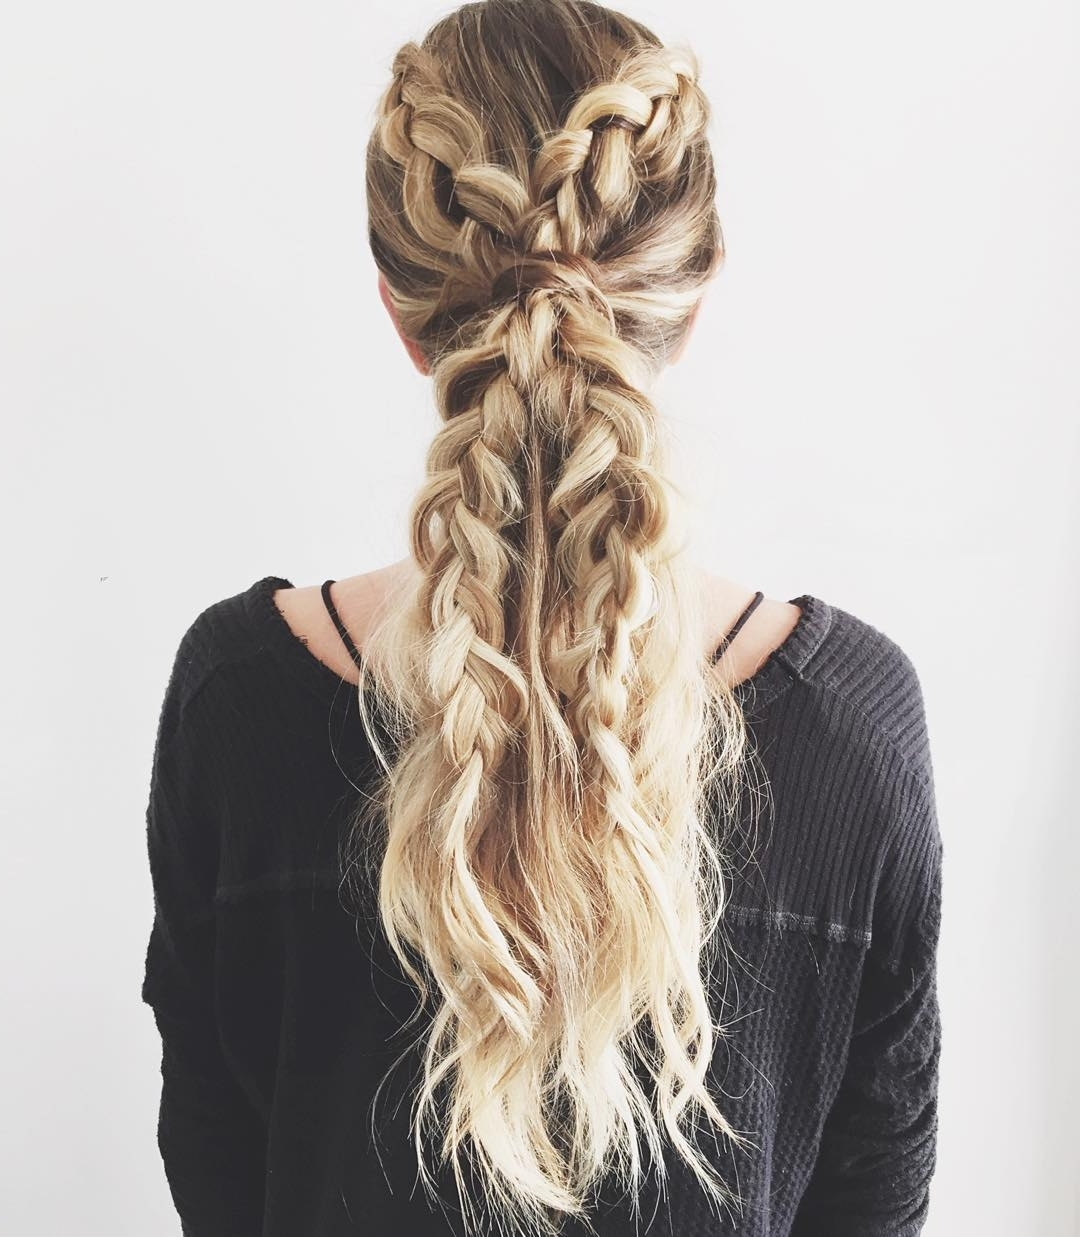 Most Popular Trendy Ponytail Hairstyles With French Plait With 30 Braided Ponytail Hairstyles To Slay In (View 8 of 20)